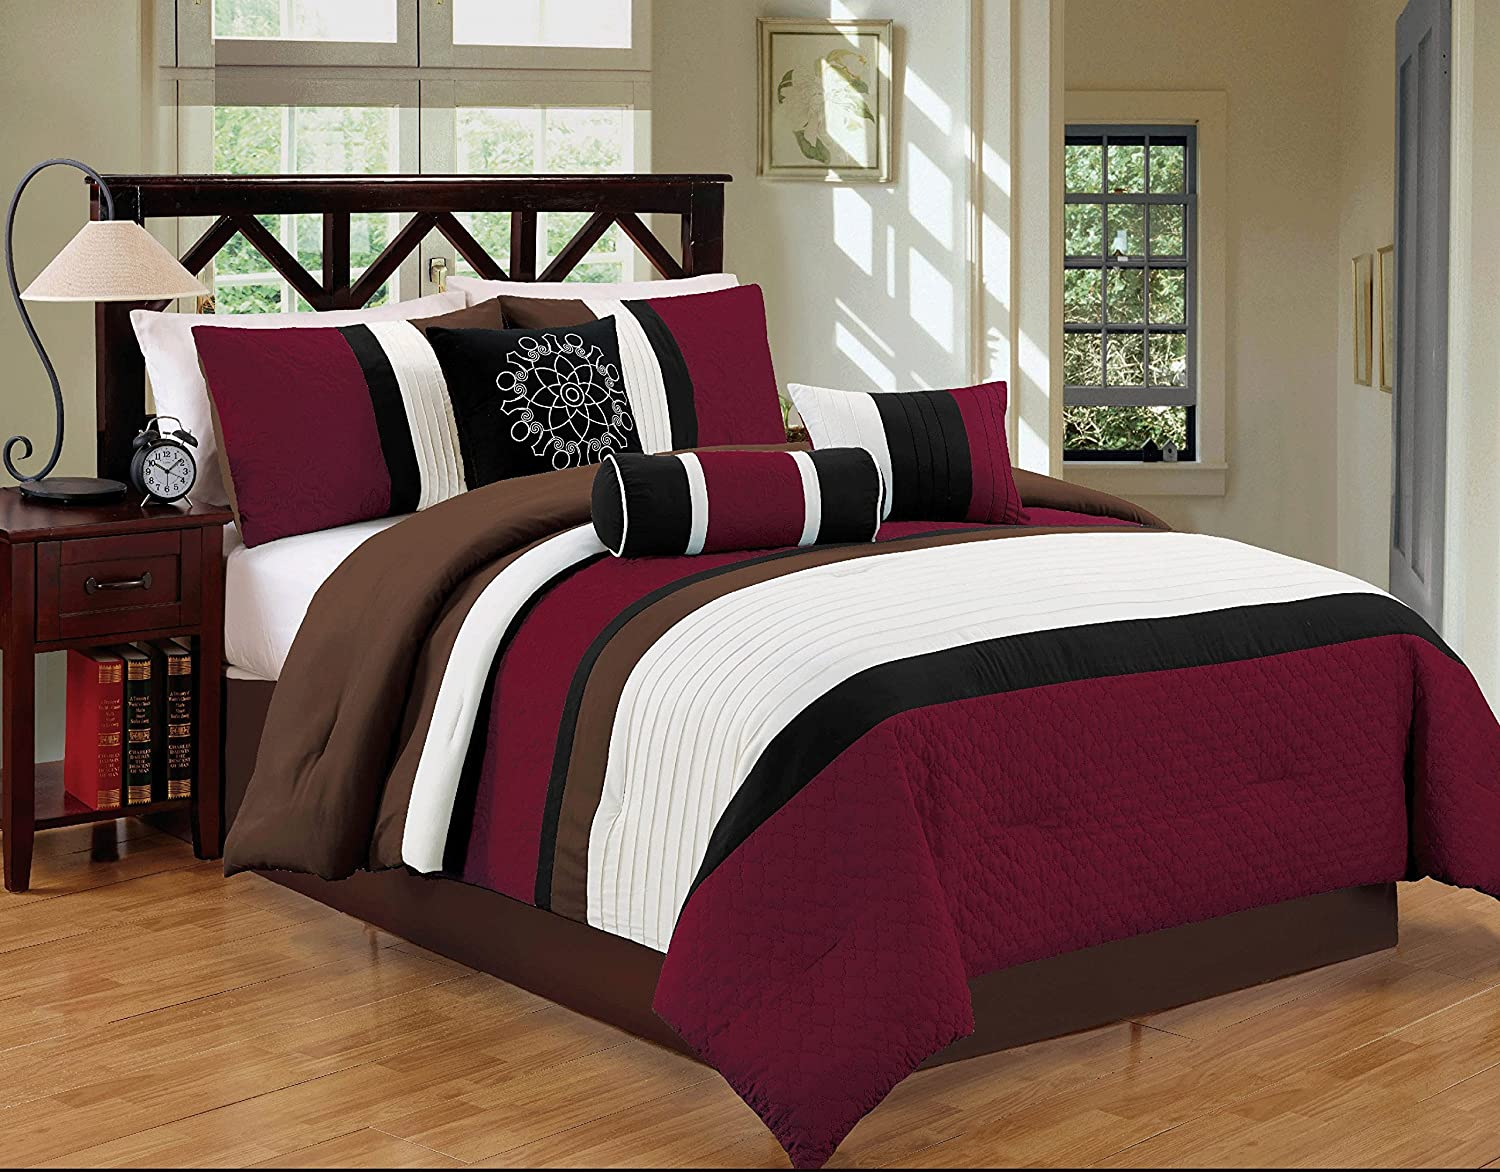 Dovedote 7 Piece Gorman Hills Stripe Comforter Set, King, Burgundy/Chocolate